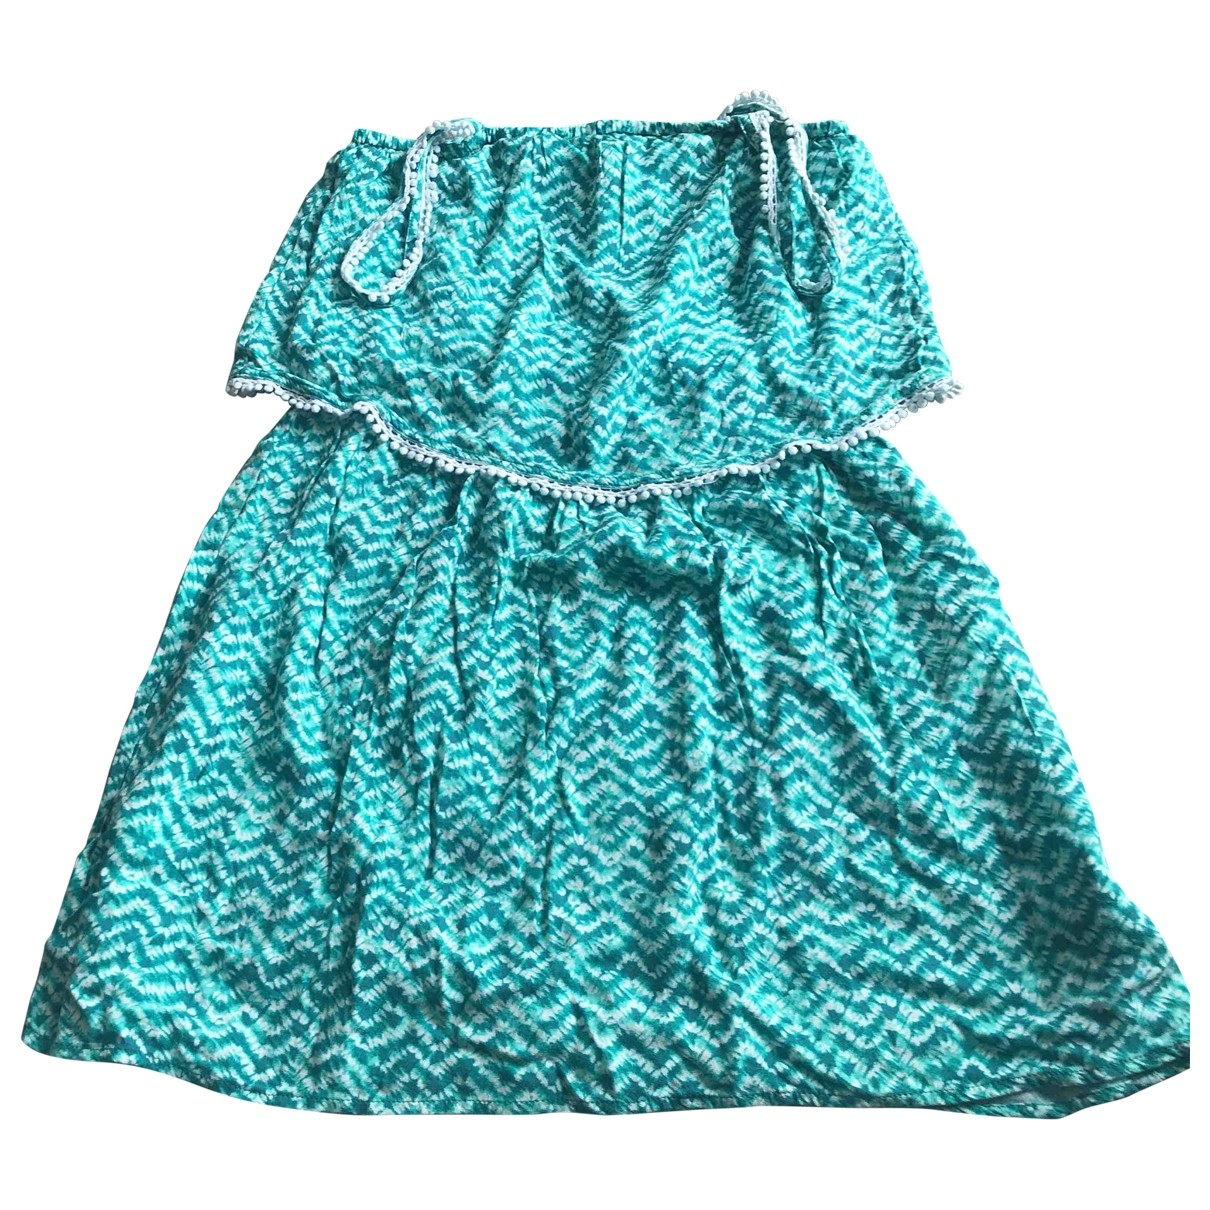 Ikks \N Green Cotton - elasthane dress for Kids 16 years - M FR